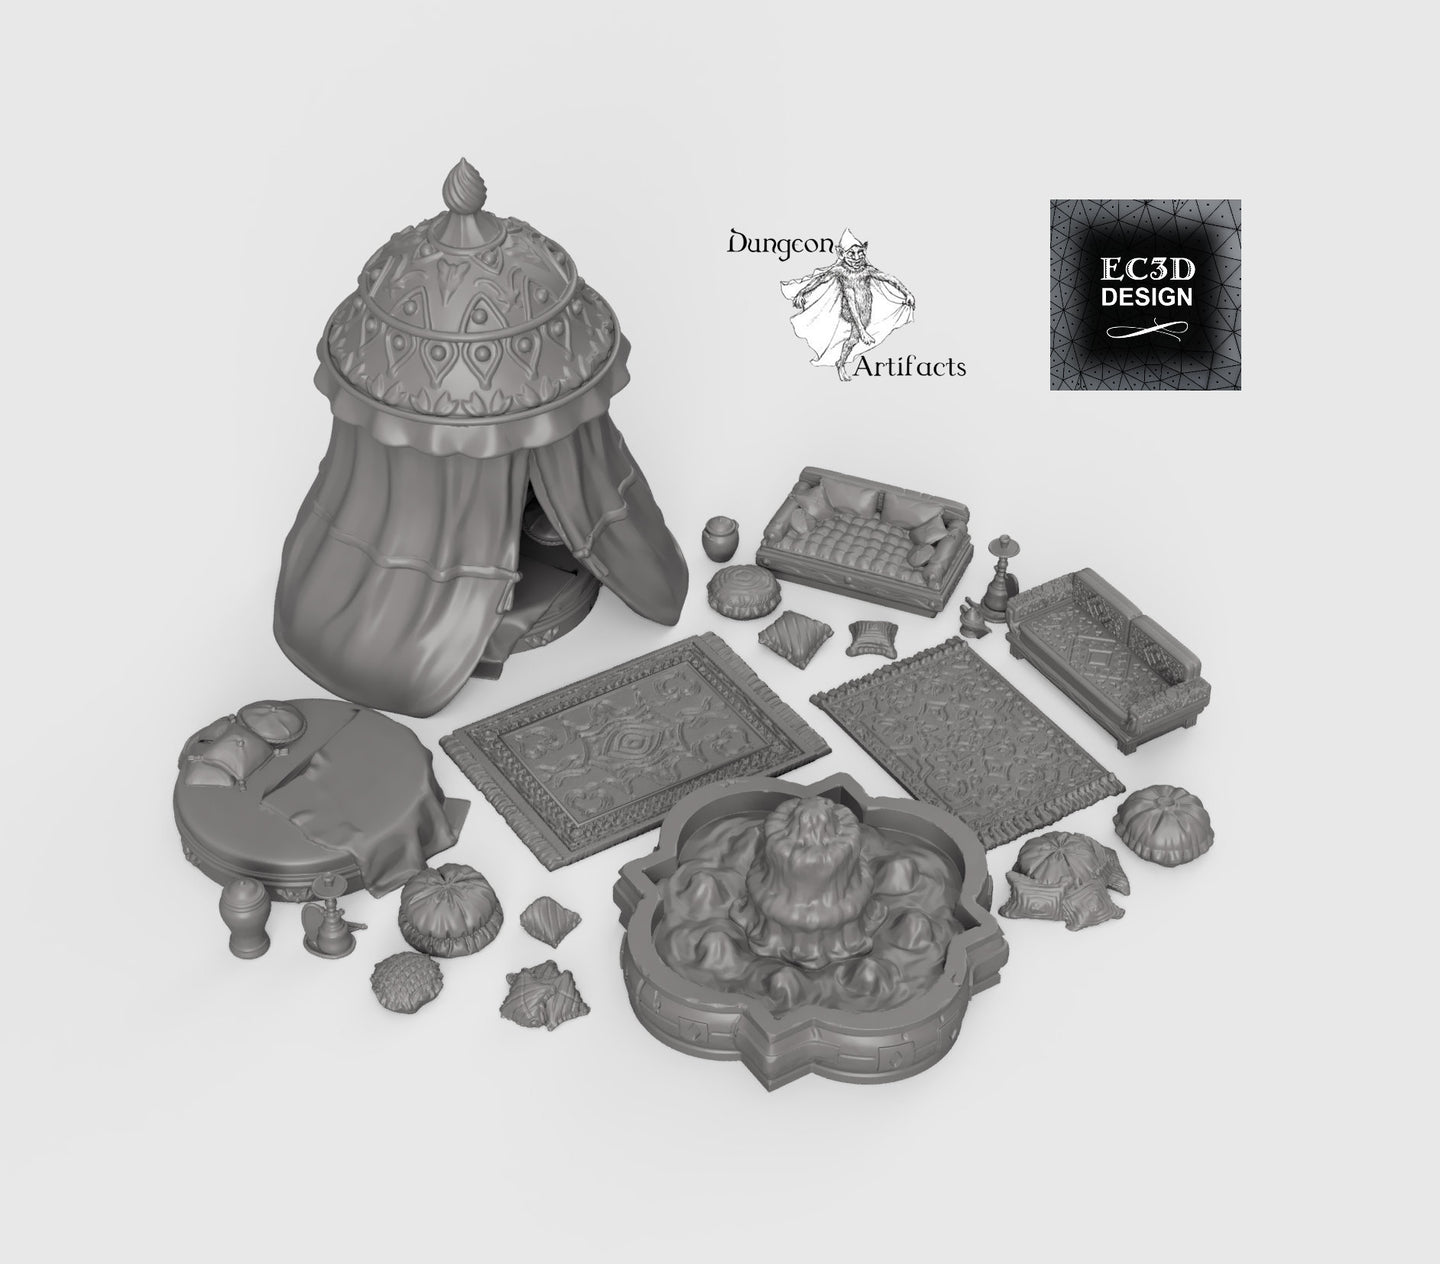 RPG Harem Set - 28mm 32mm Empire of Scorching Sands Wargaming Terrain D&D, DnD, Pathfinder, SW Legion, Warhammer